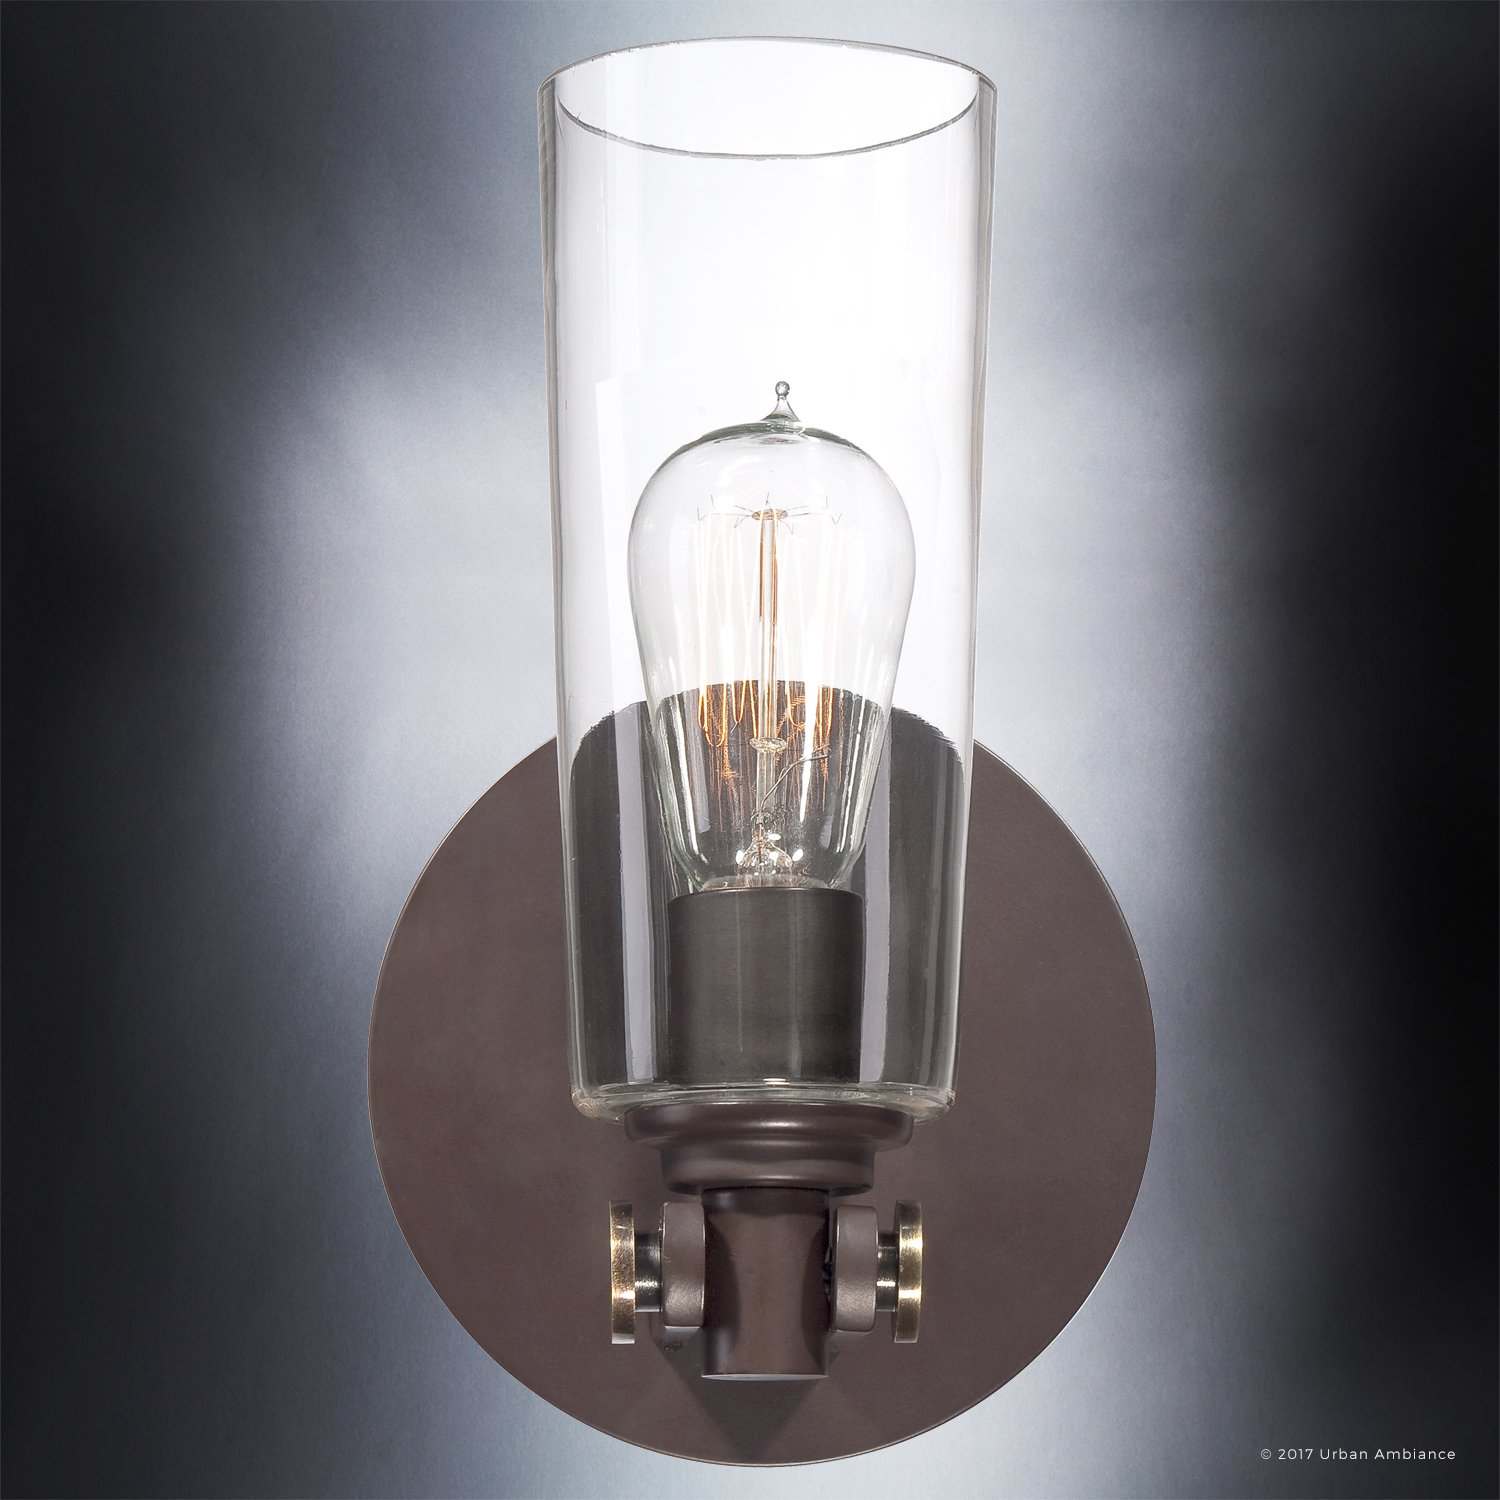 Luxury Vintage Indoor Wall Light, Small Size: 11''H x 6.5''W, with Casual Style Elements, Retro Design, Elegant Estate Bronze Finish and Clear Glass, Includes Edison Bulb, UQL2690 by Urban Ambiance by Urban Ambiance (Image #4)